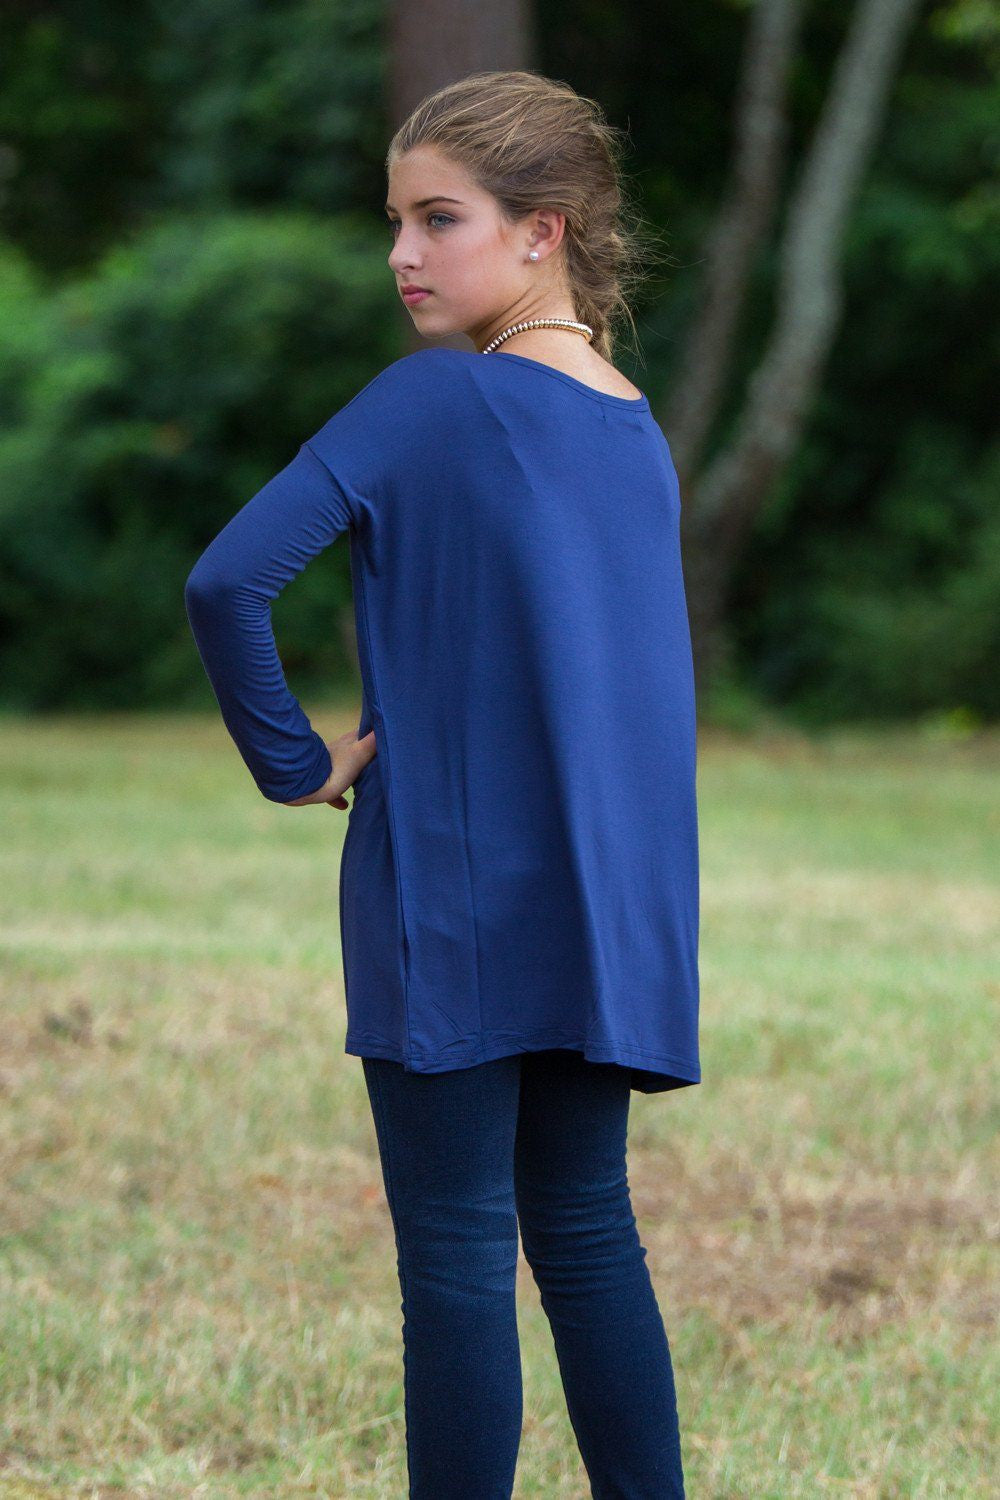 Long Sleeve Kids Piko Top - Navy - Piko Clothing